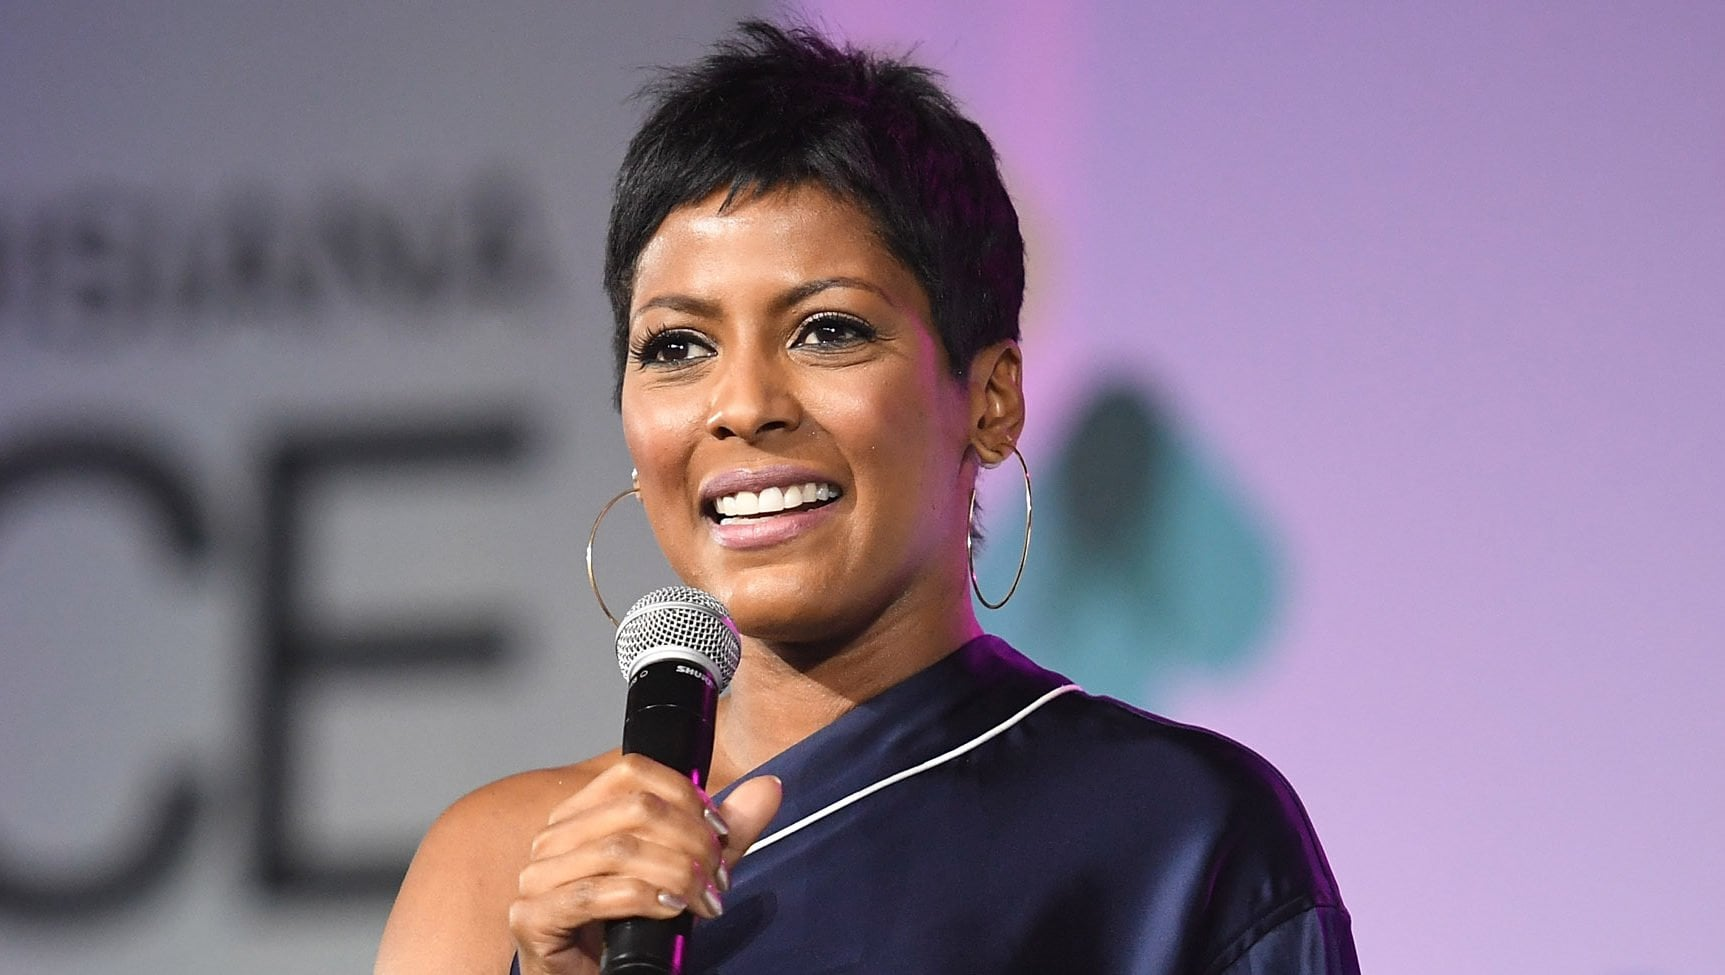 Tamron Hall wanted more women on the staff of her new talk show